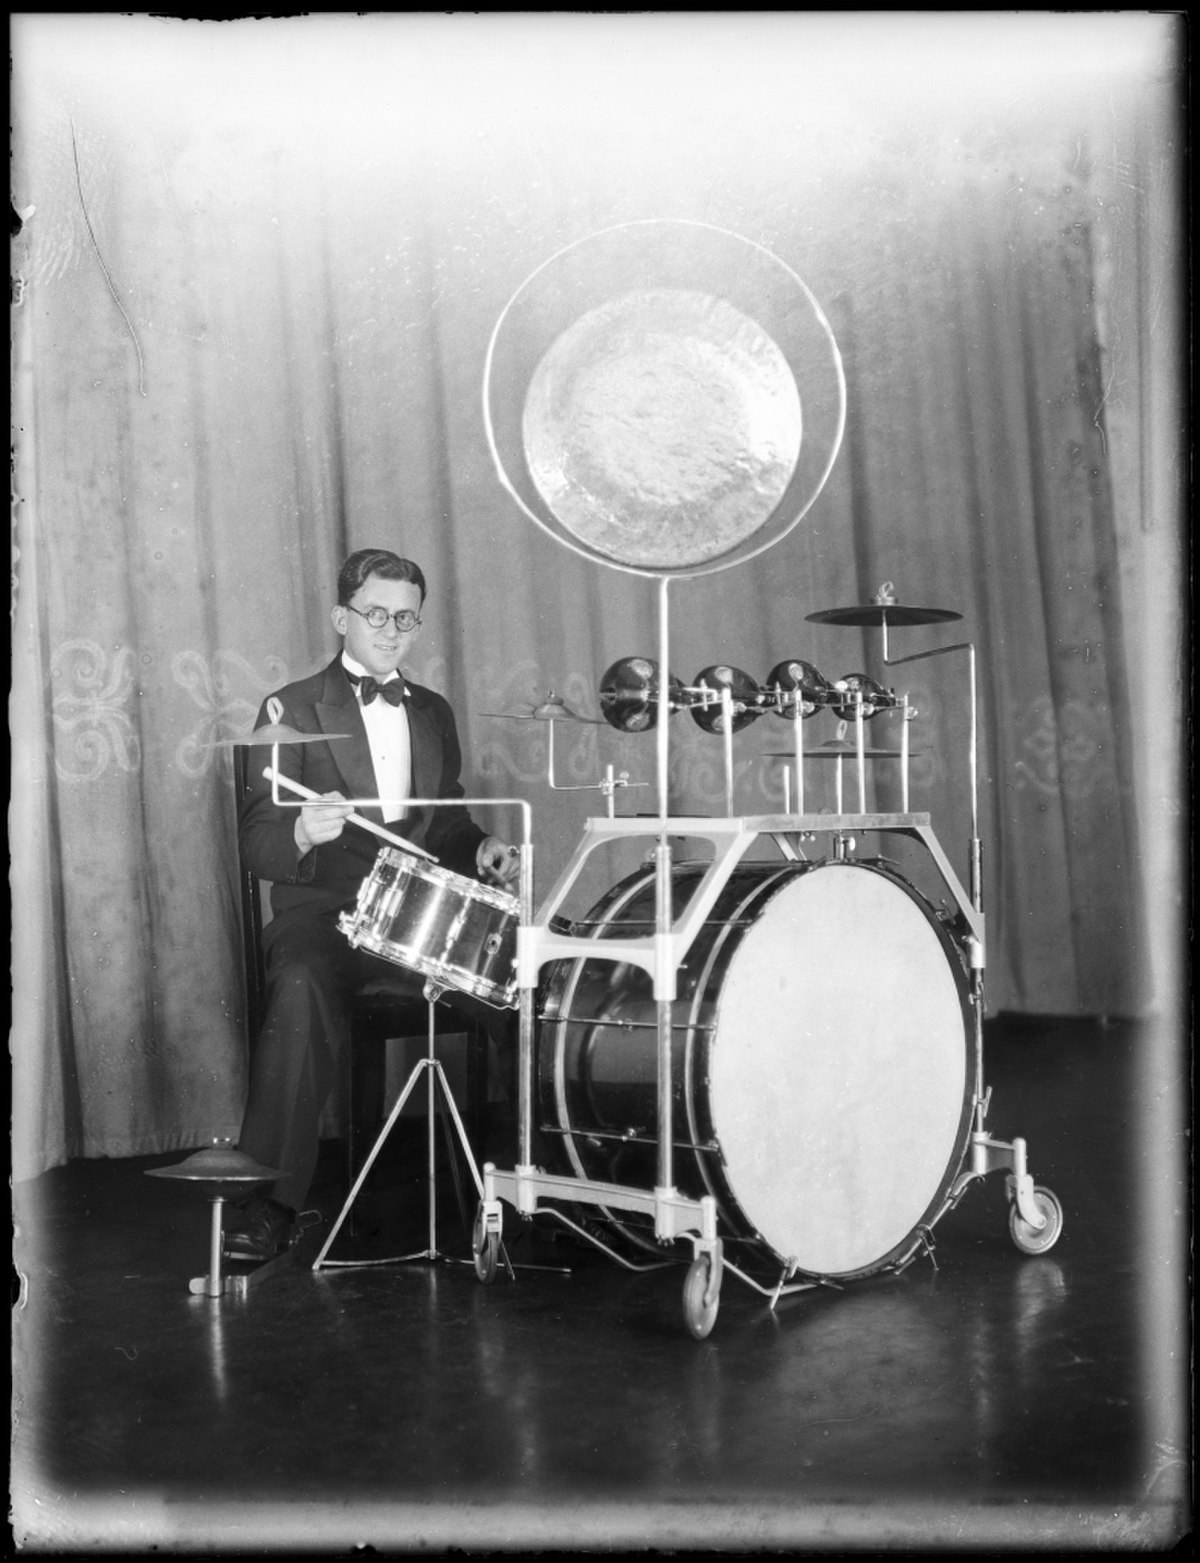 1200px-Dance_band_drummer_at_Mark_Foy's_Empress_Ballroom_from_The_Powerhouse_Museum.jpg | Gaze of time , Dance band drummer at Mark Foy's Empress Ballroom from The Powerhouse Museum - Drum kit - Wikipedia (Public Domain)